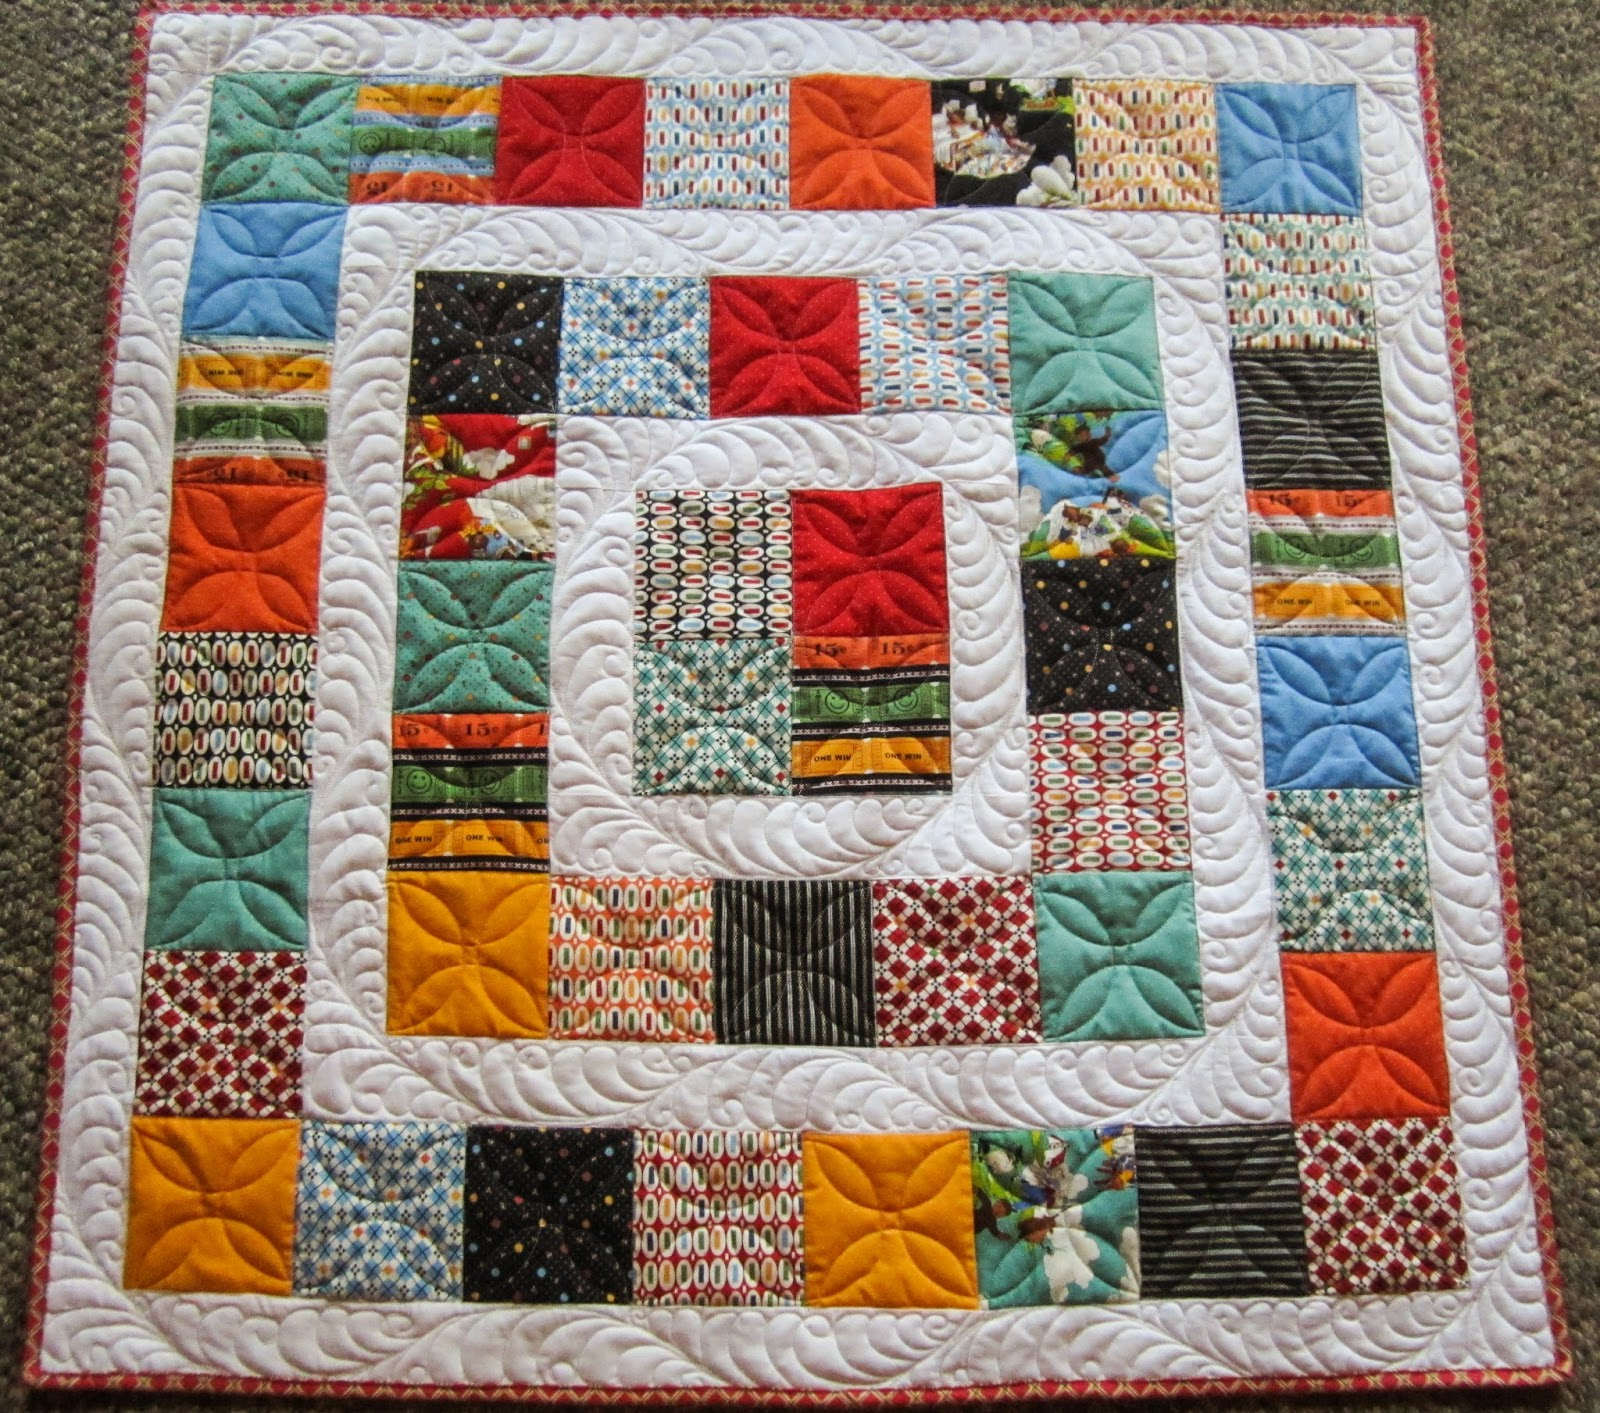 Sue Daurio's Quilting : 8 quilts for 100 quilts for kids